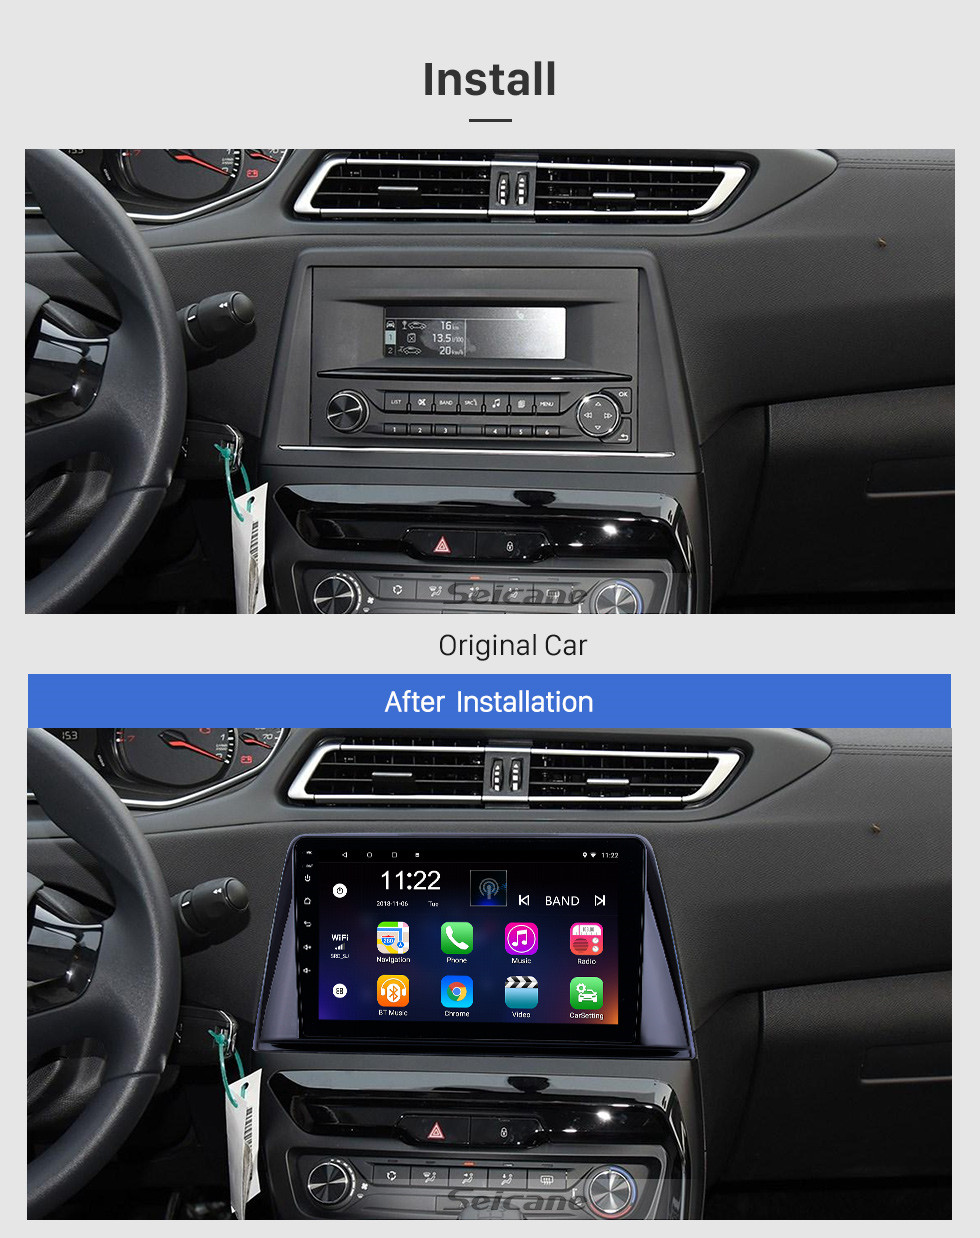 Seicane 2016-2018 Peugeot 308 Android 9.0 9 inch GPS Navigation Radio Bluetooth HD Touchscreen USB Carplay support TPMS DAB+ 1080P